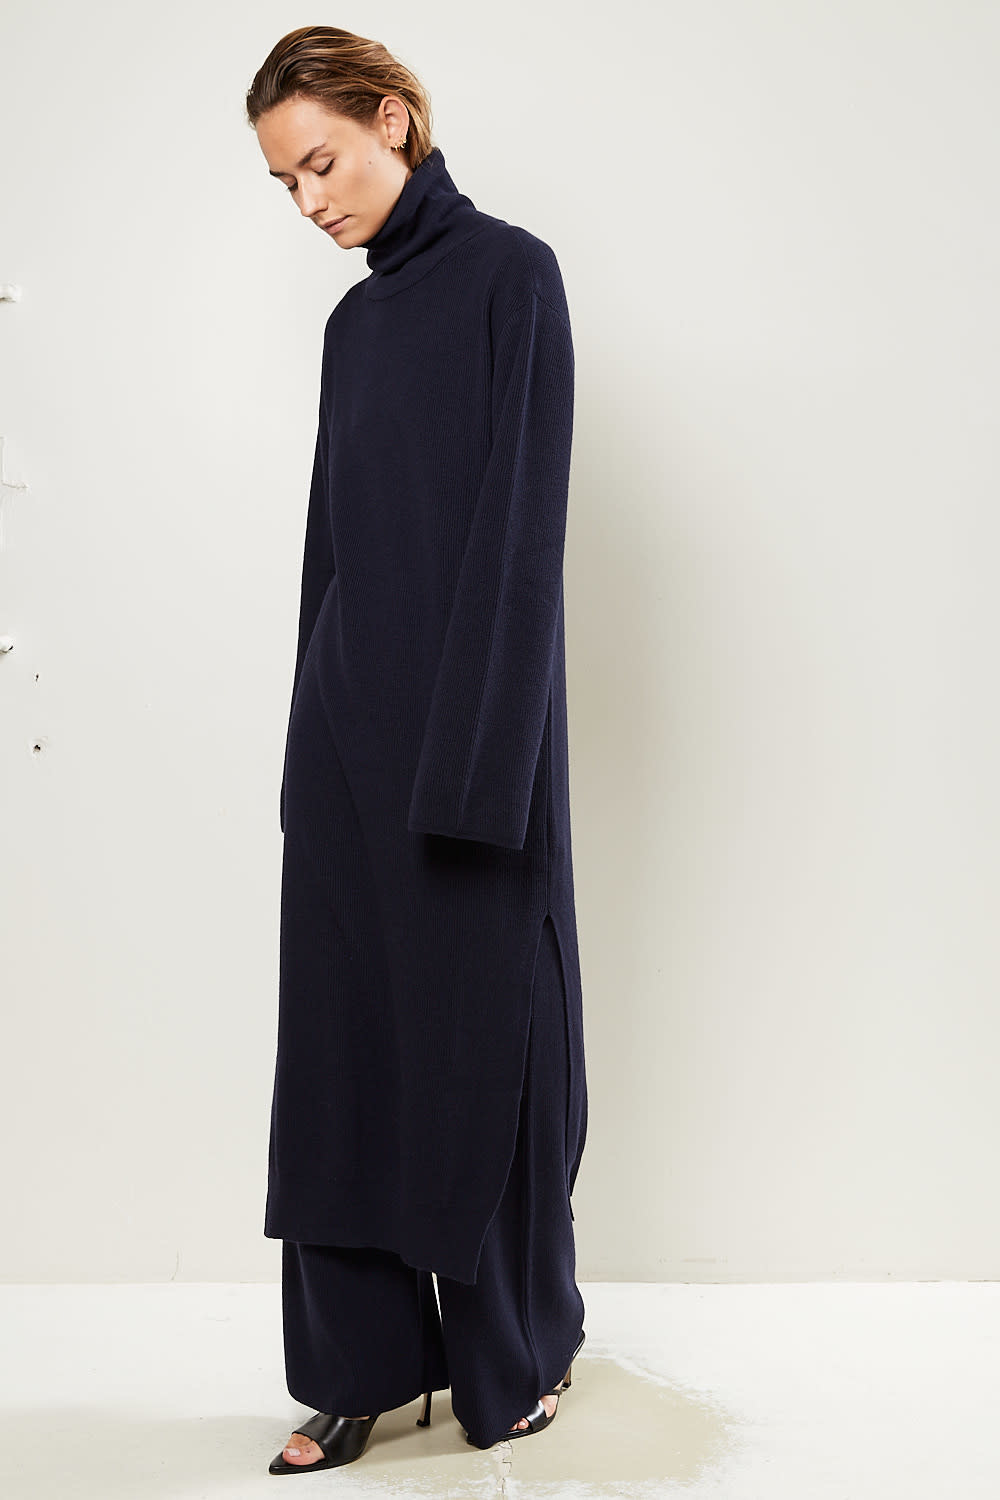 Nanushka Canaan recycled cashmere knit dress